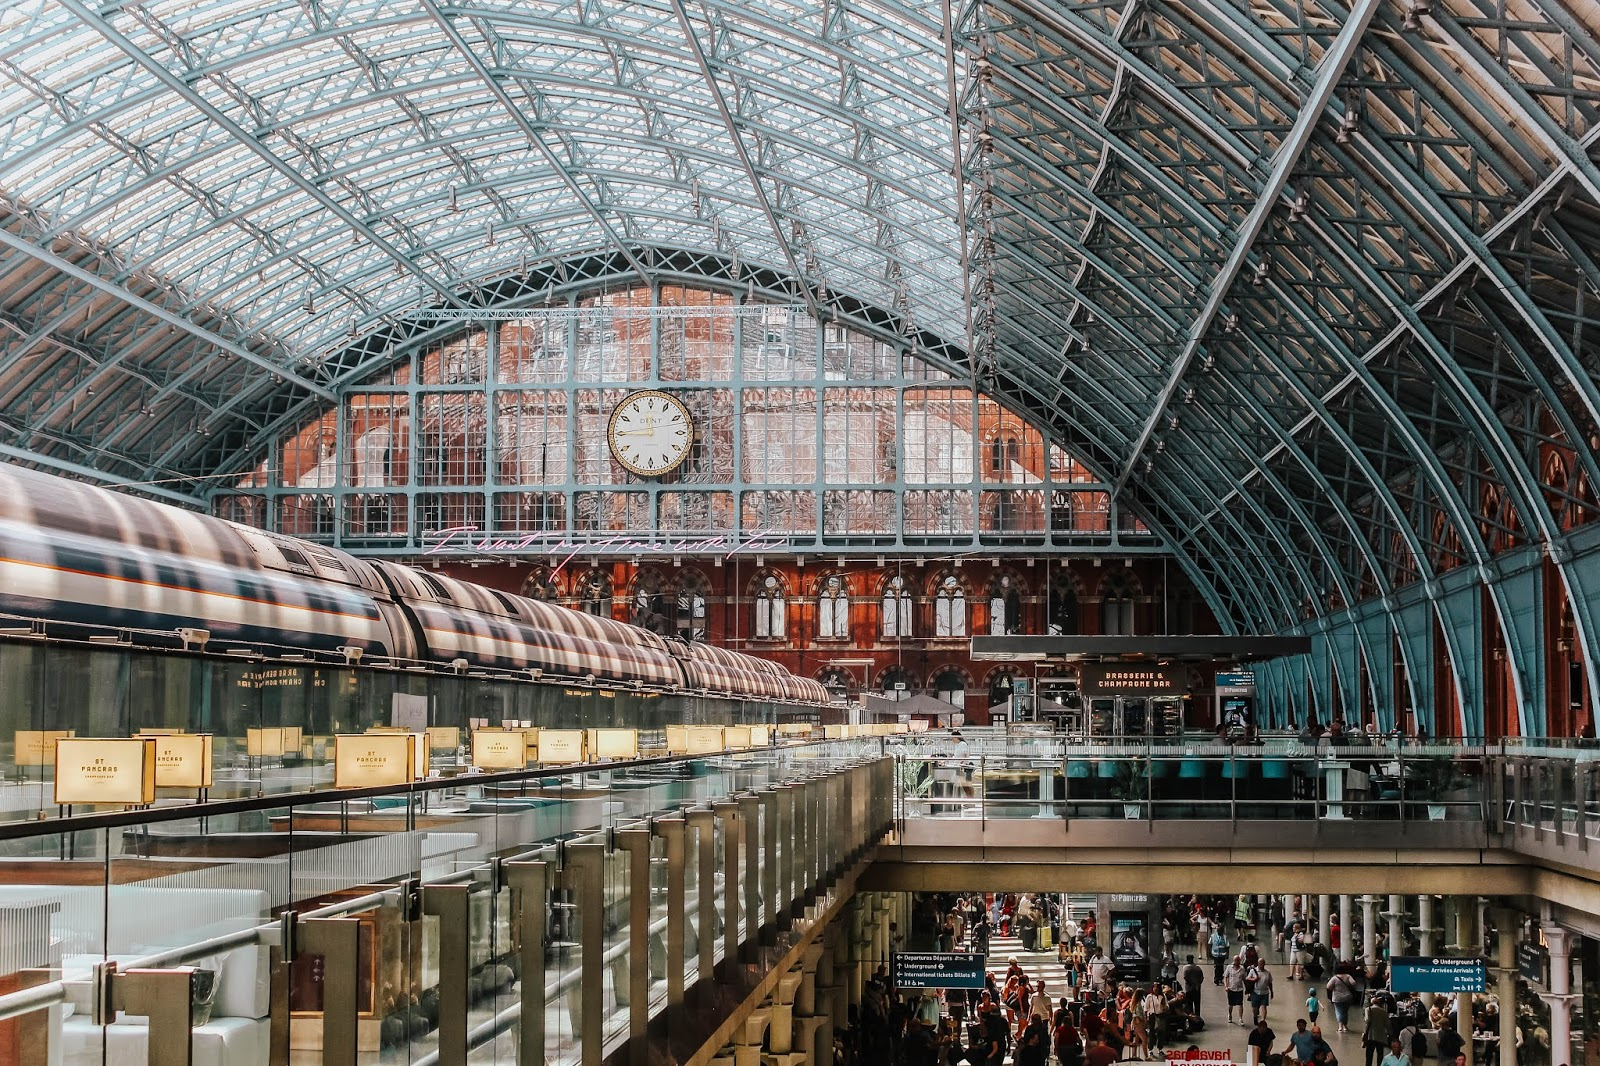 St Pancras International Station Things To Do While You Wait